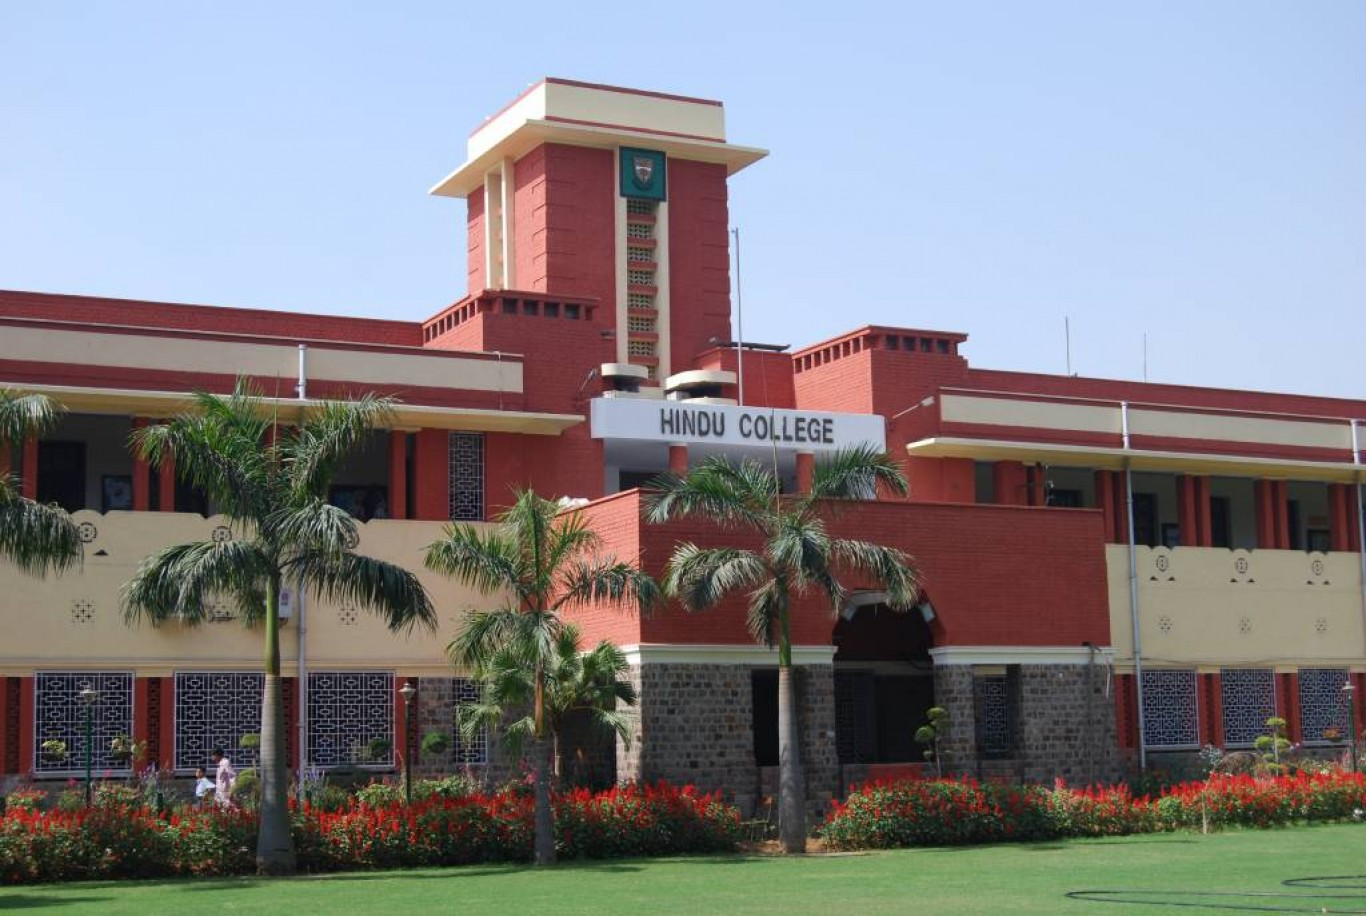 10 THINGS THAT HINDU COLLEGE STUDENTS WILL RELATE TO